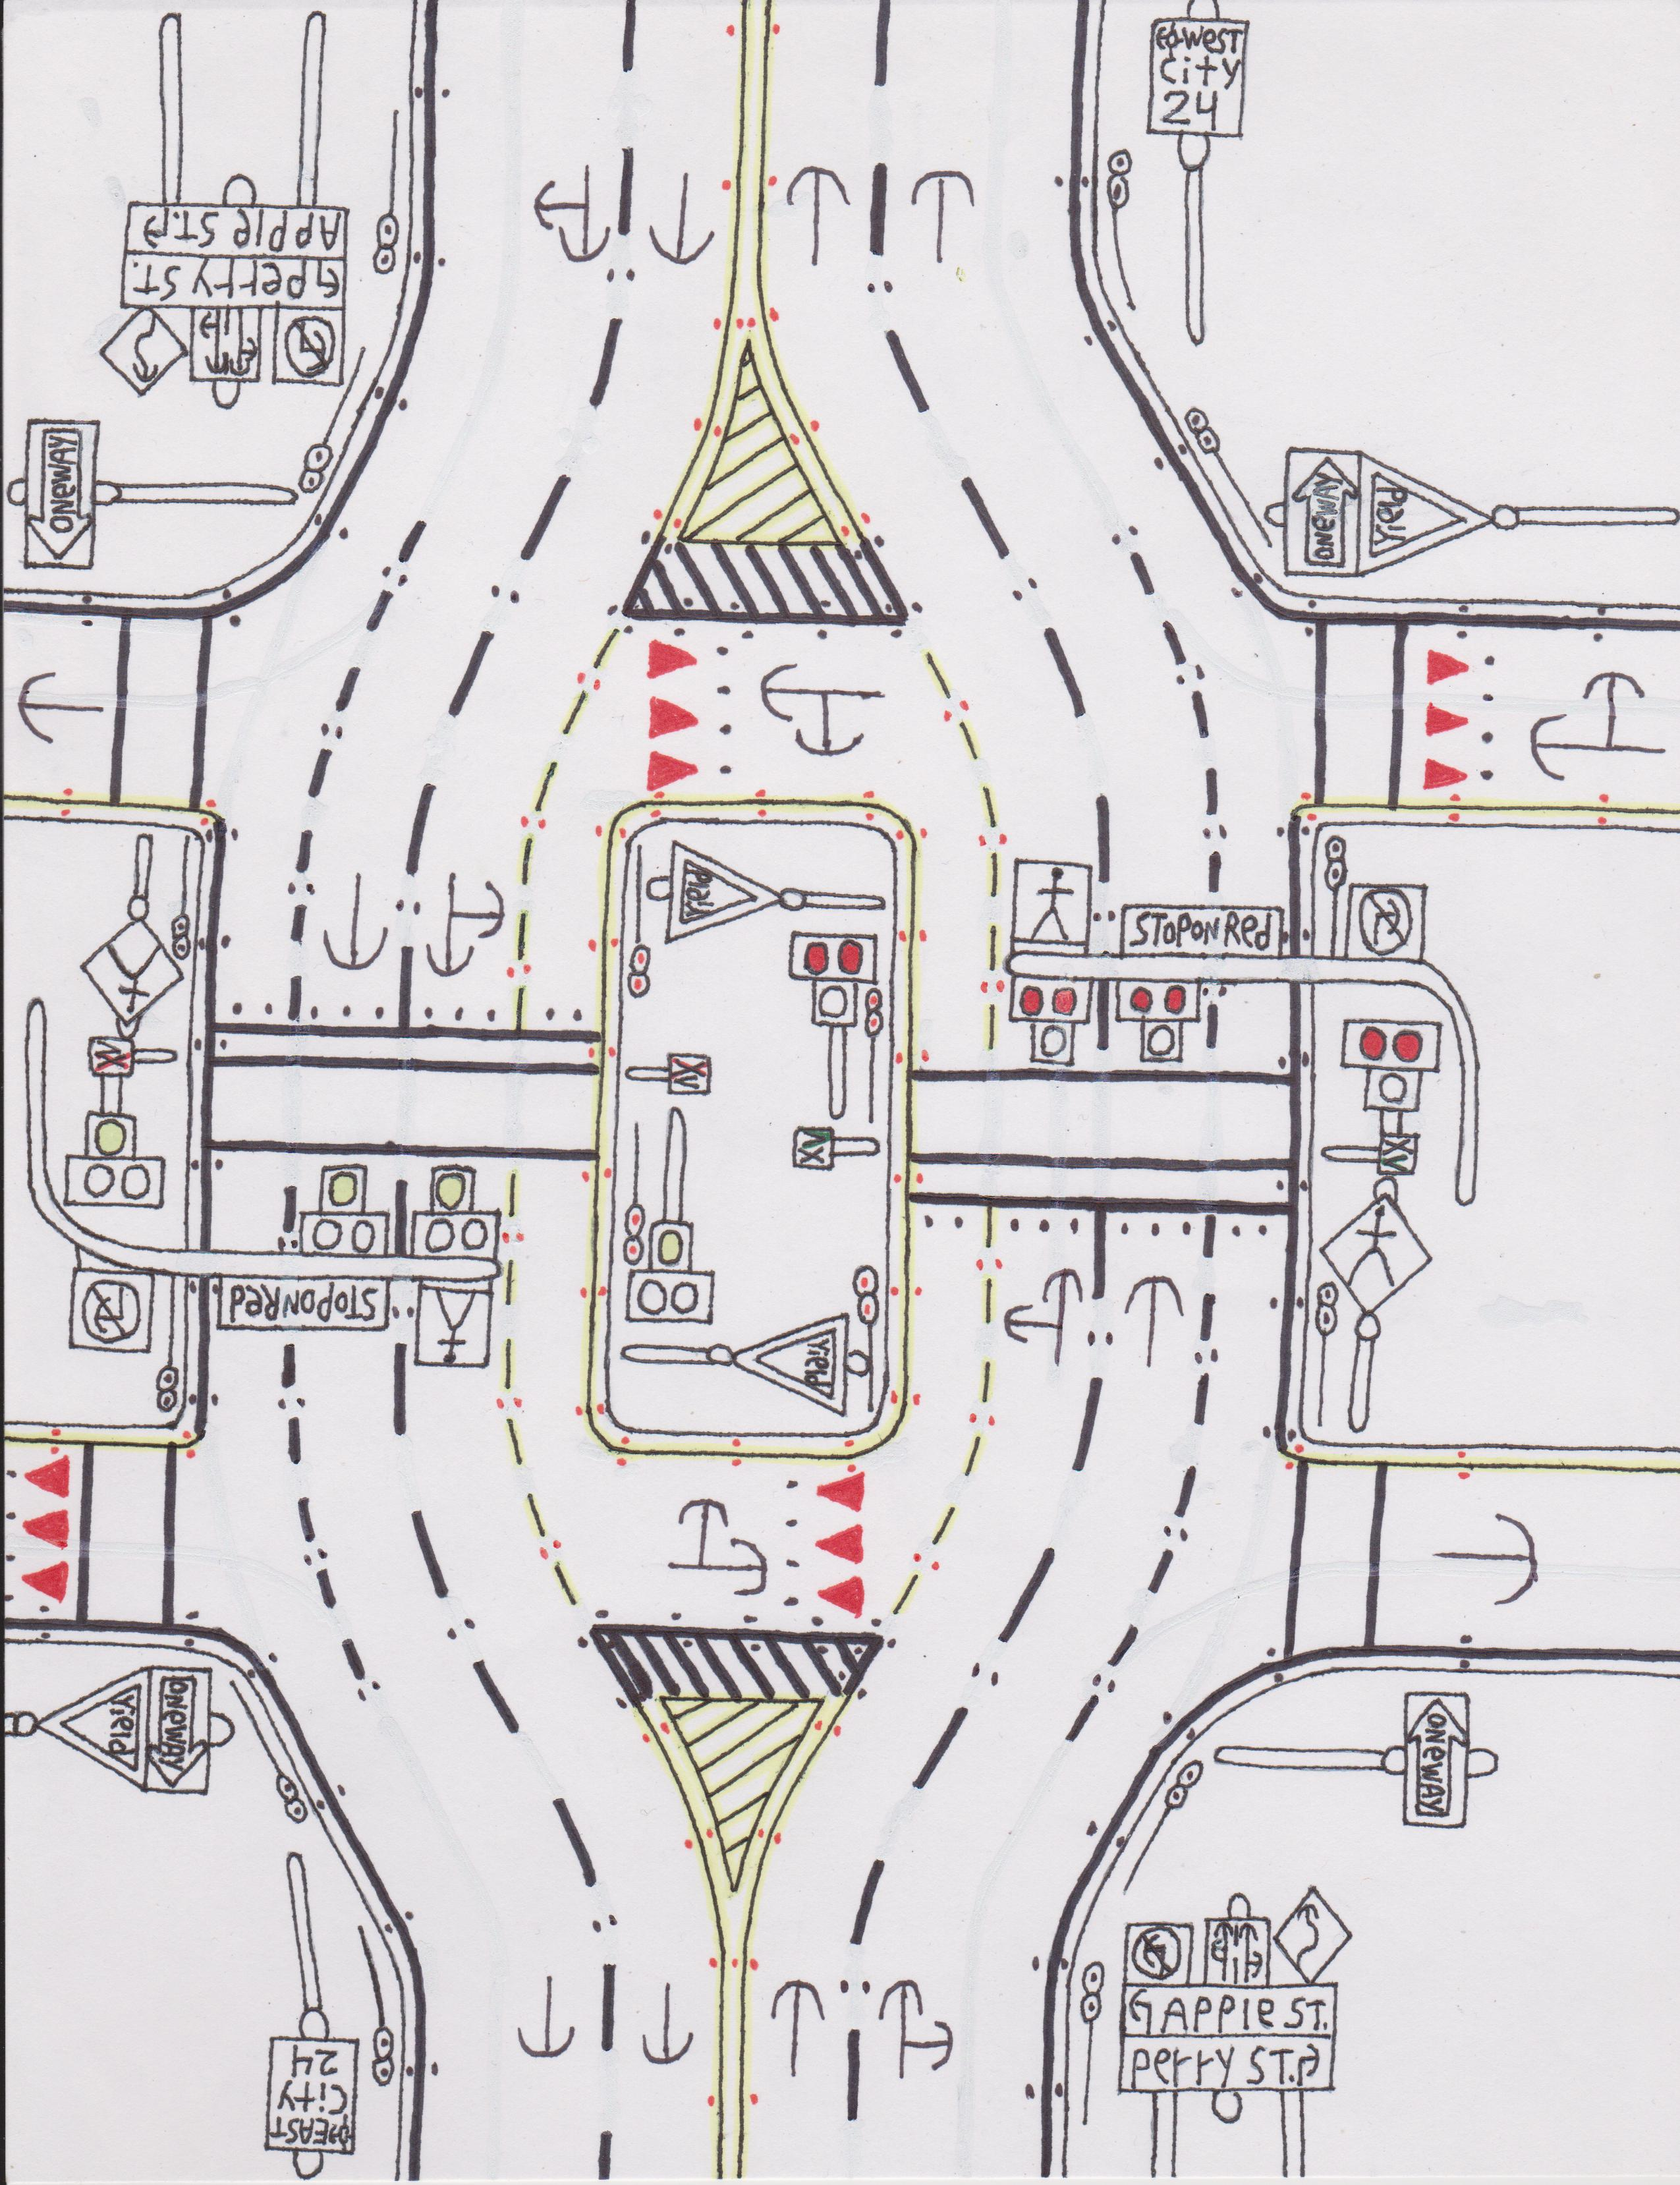 Roadscapes Wednesday: Five New Road Drawings Including a 28th ...